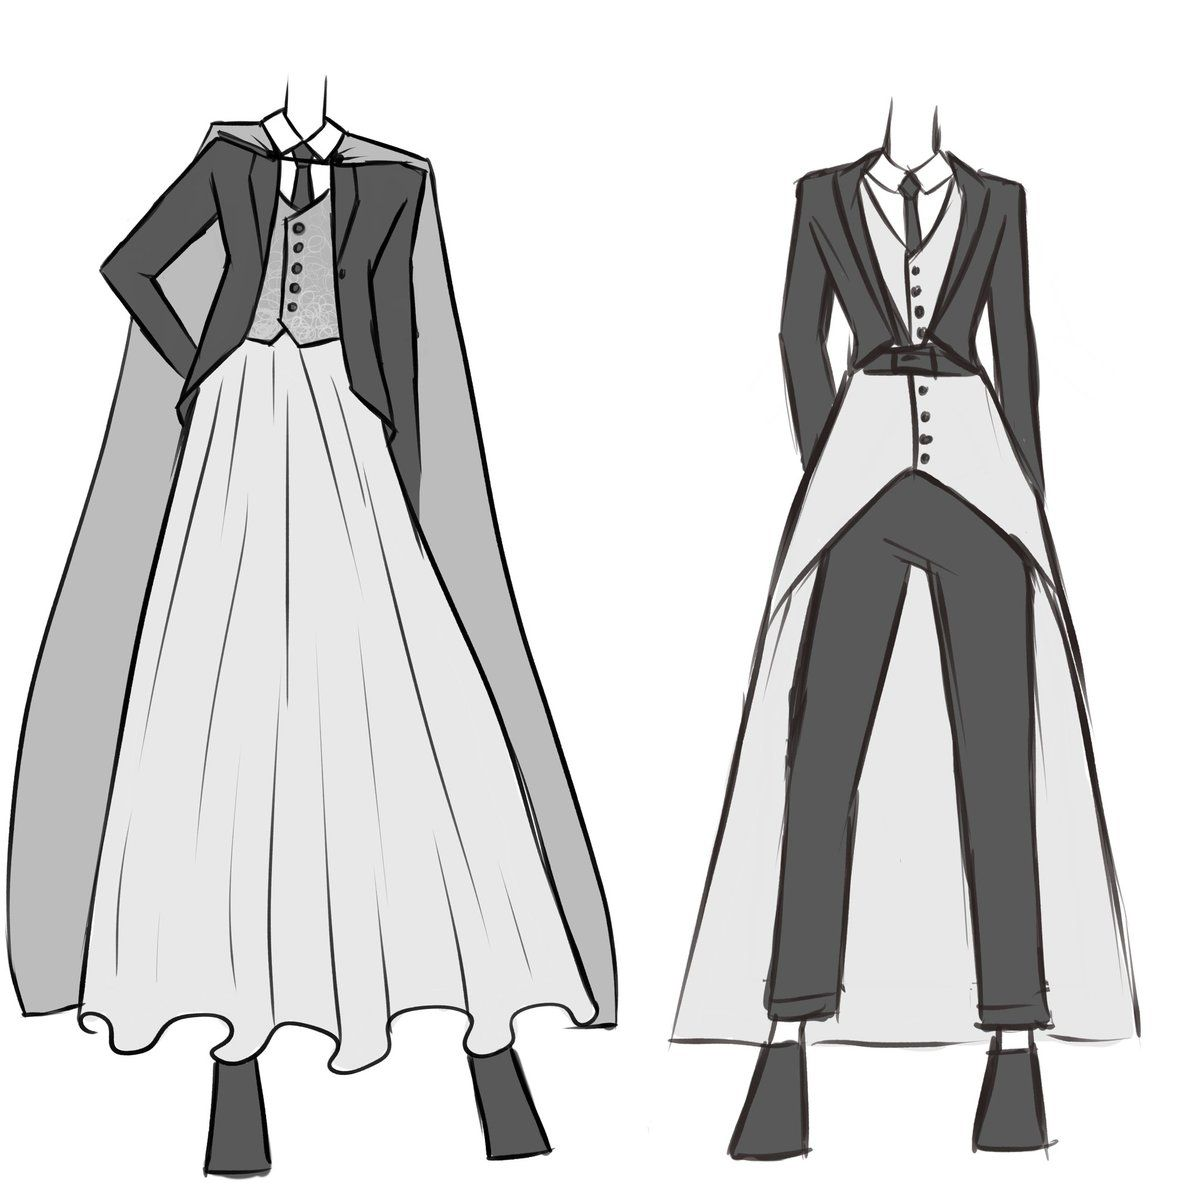 Haleykynz On Twitter Androgynous Fashion Gender Fluid Fashion Androgynous Outfits